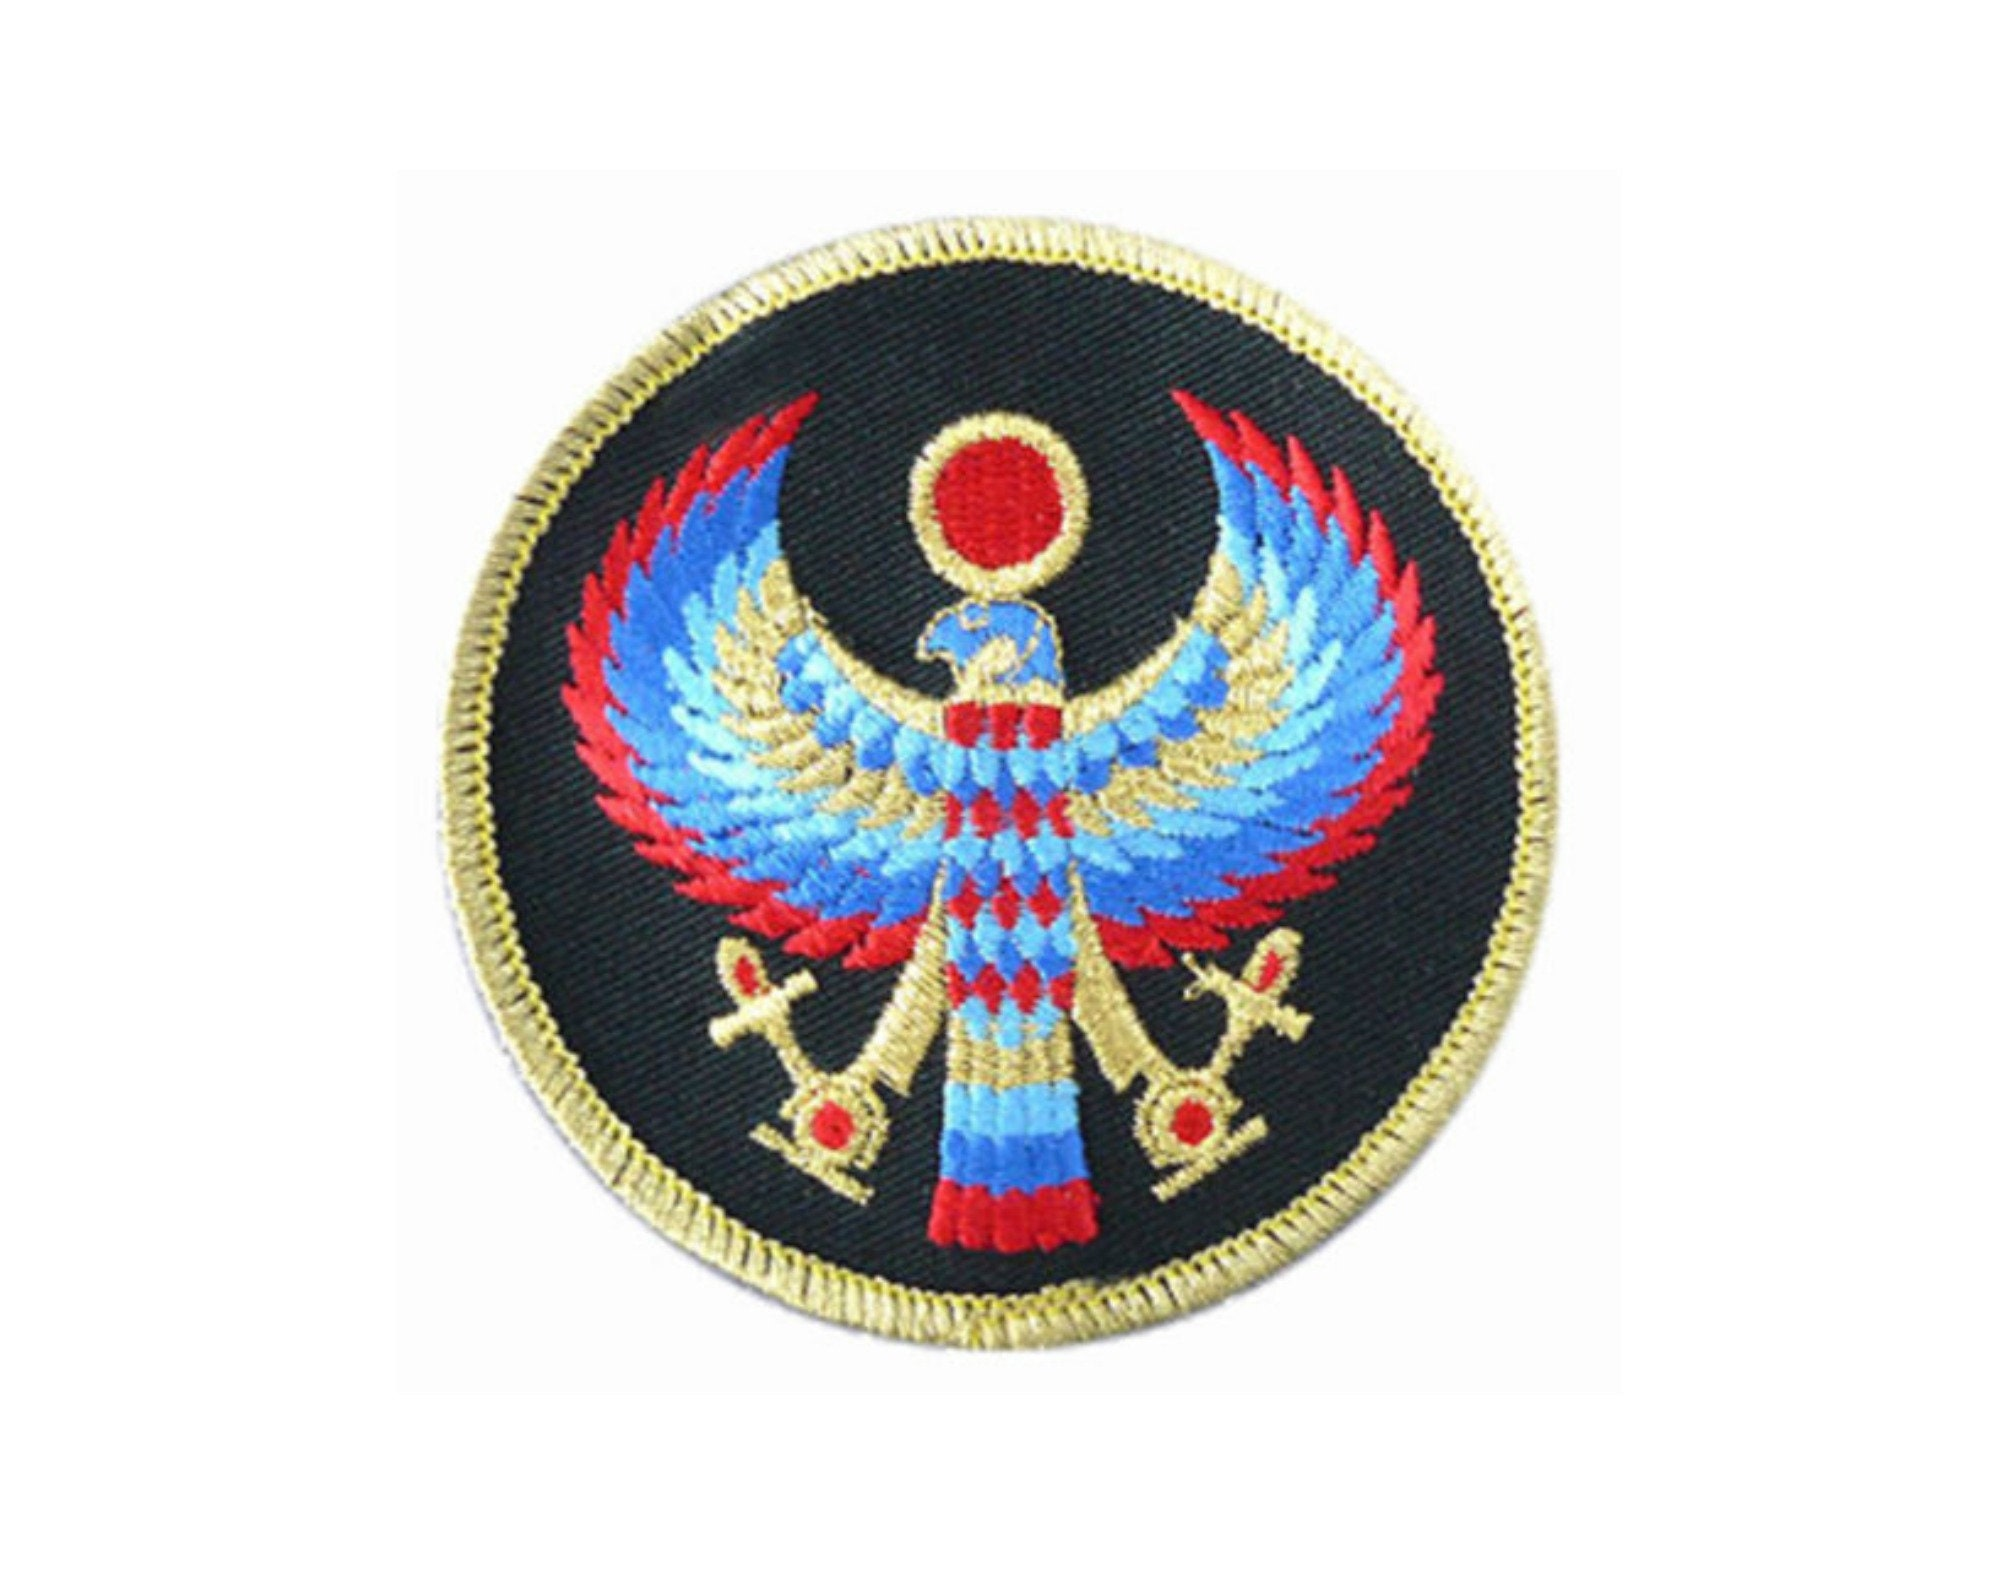 Horus Patch 3 Round Patch Sew On Applique Egyptian Etsy